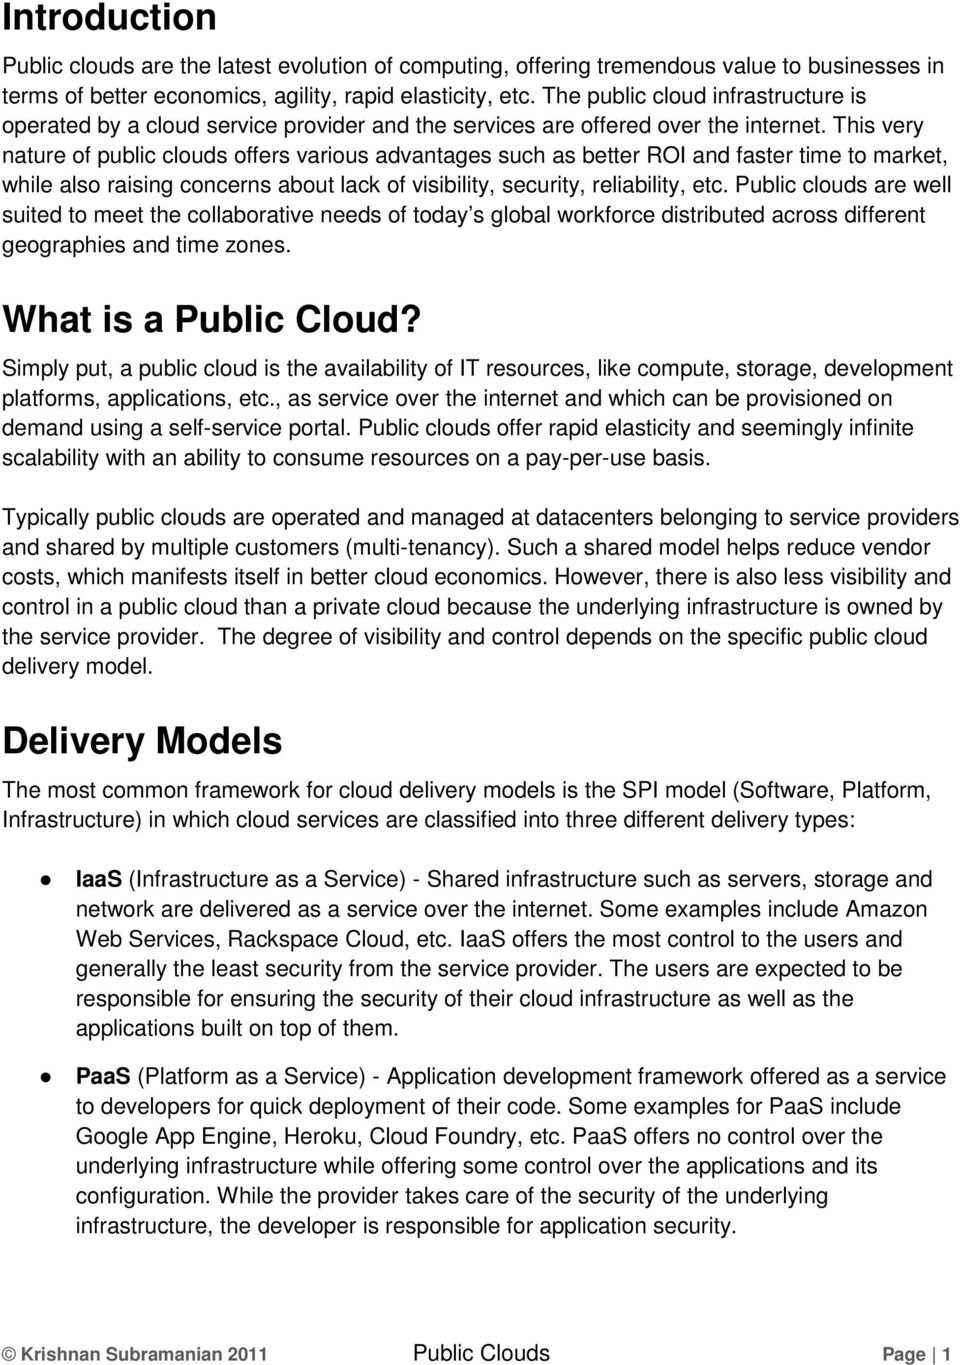 This very nature of public clouds offers various advantages such as better ROI and faster time to market, while also raising concerns about lack of visibility, security, reliability, etc.